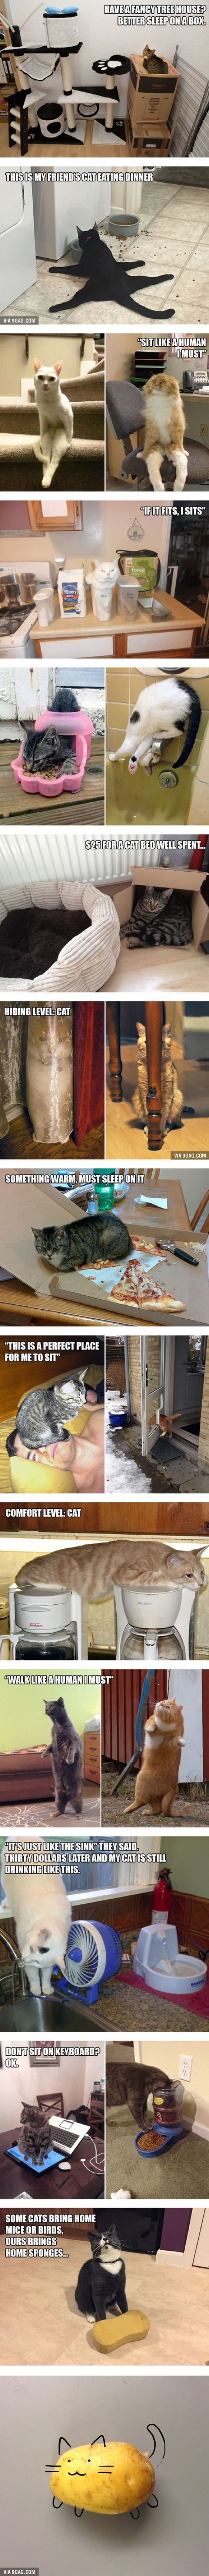 458 best Other funny stuff images on Pinterest